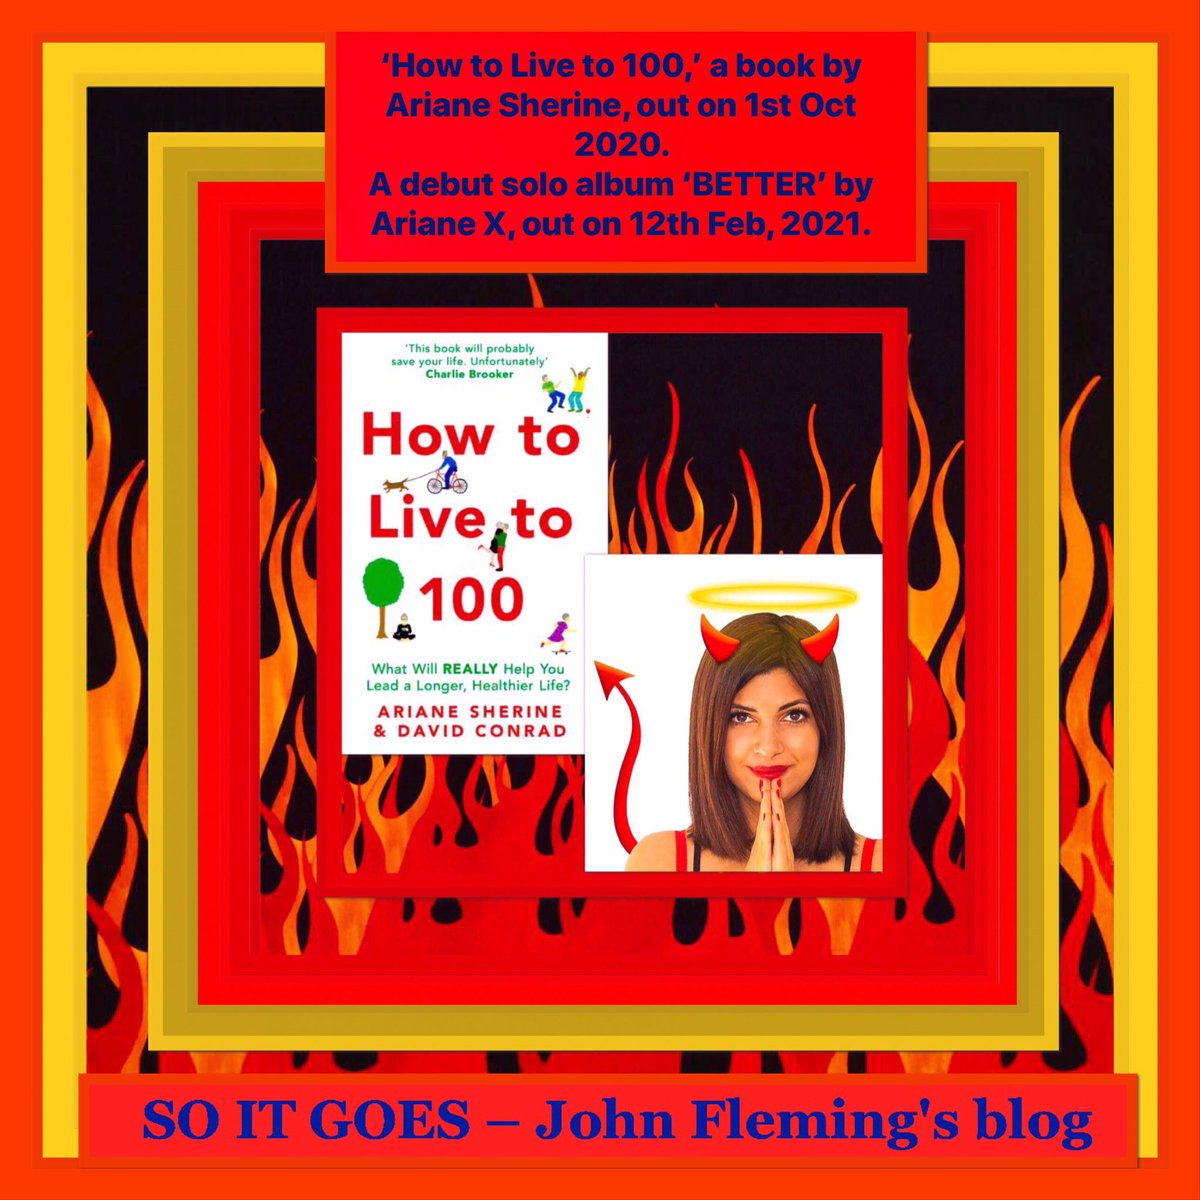 'How to Live to 100,' a #book by #ArianeSherine, out on 1st Oct 2020. A debut solo #album 'BETTER' by #ArianeX, out on 12th Feb, 2021.  #thejohnfleming #blog  #london #lovelondon #UKSOPRO #edfringe #sheffieldissuper #rotherhamiswonderful #barnsleyisbrill   http://thejohnfleming.wordpress.com/2020/07/12/johpic.twitter.com/LJdURKS12q